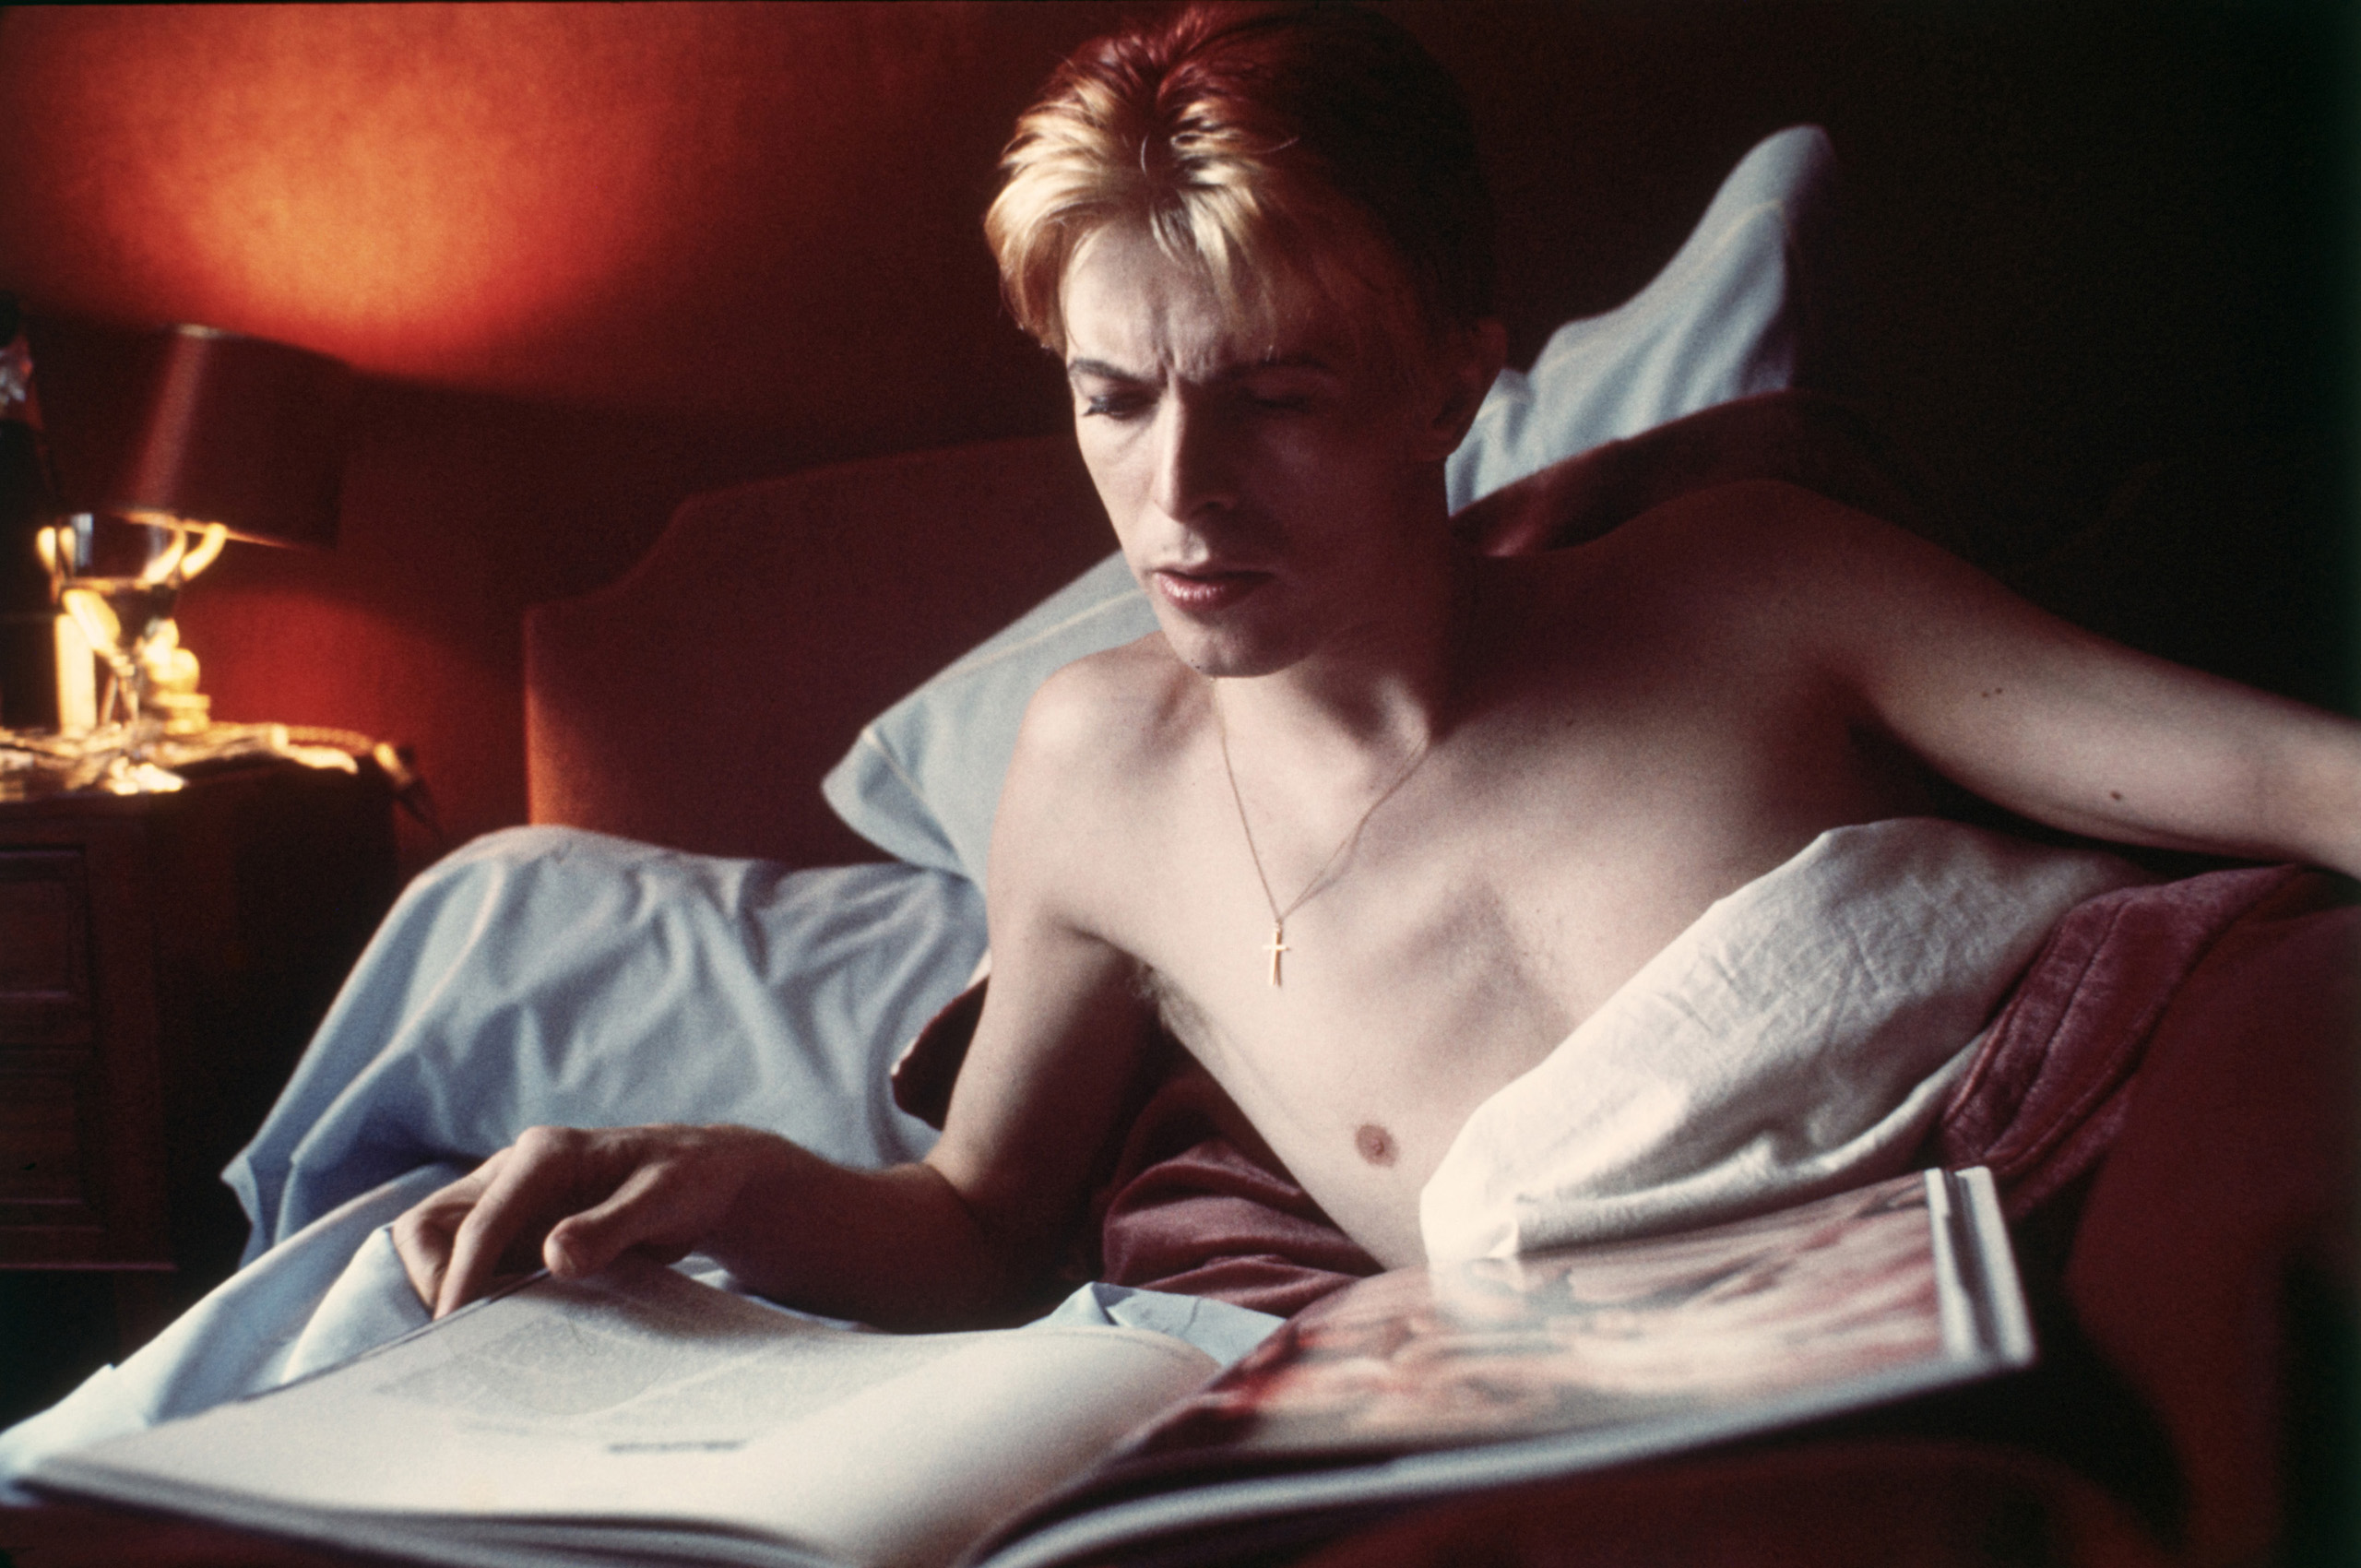 Bowie reading in bed at L'Hotel in Paris.